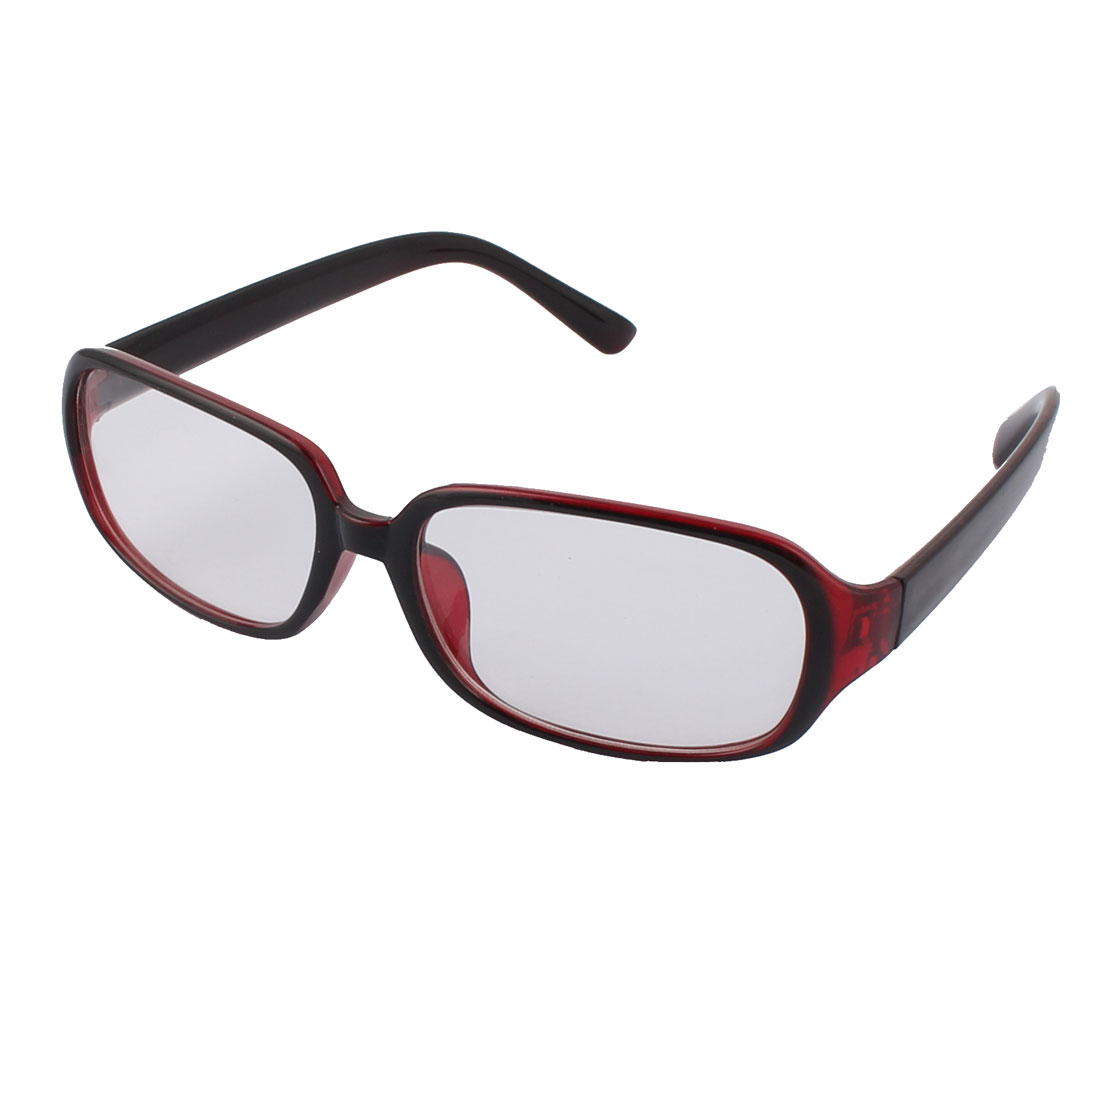 Stylish Clear Square Shaped Lens Light Black Red Frame Plastic Eyewear Plain Glass